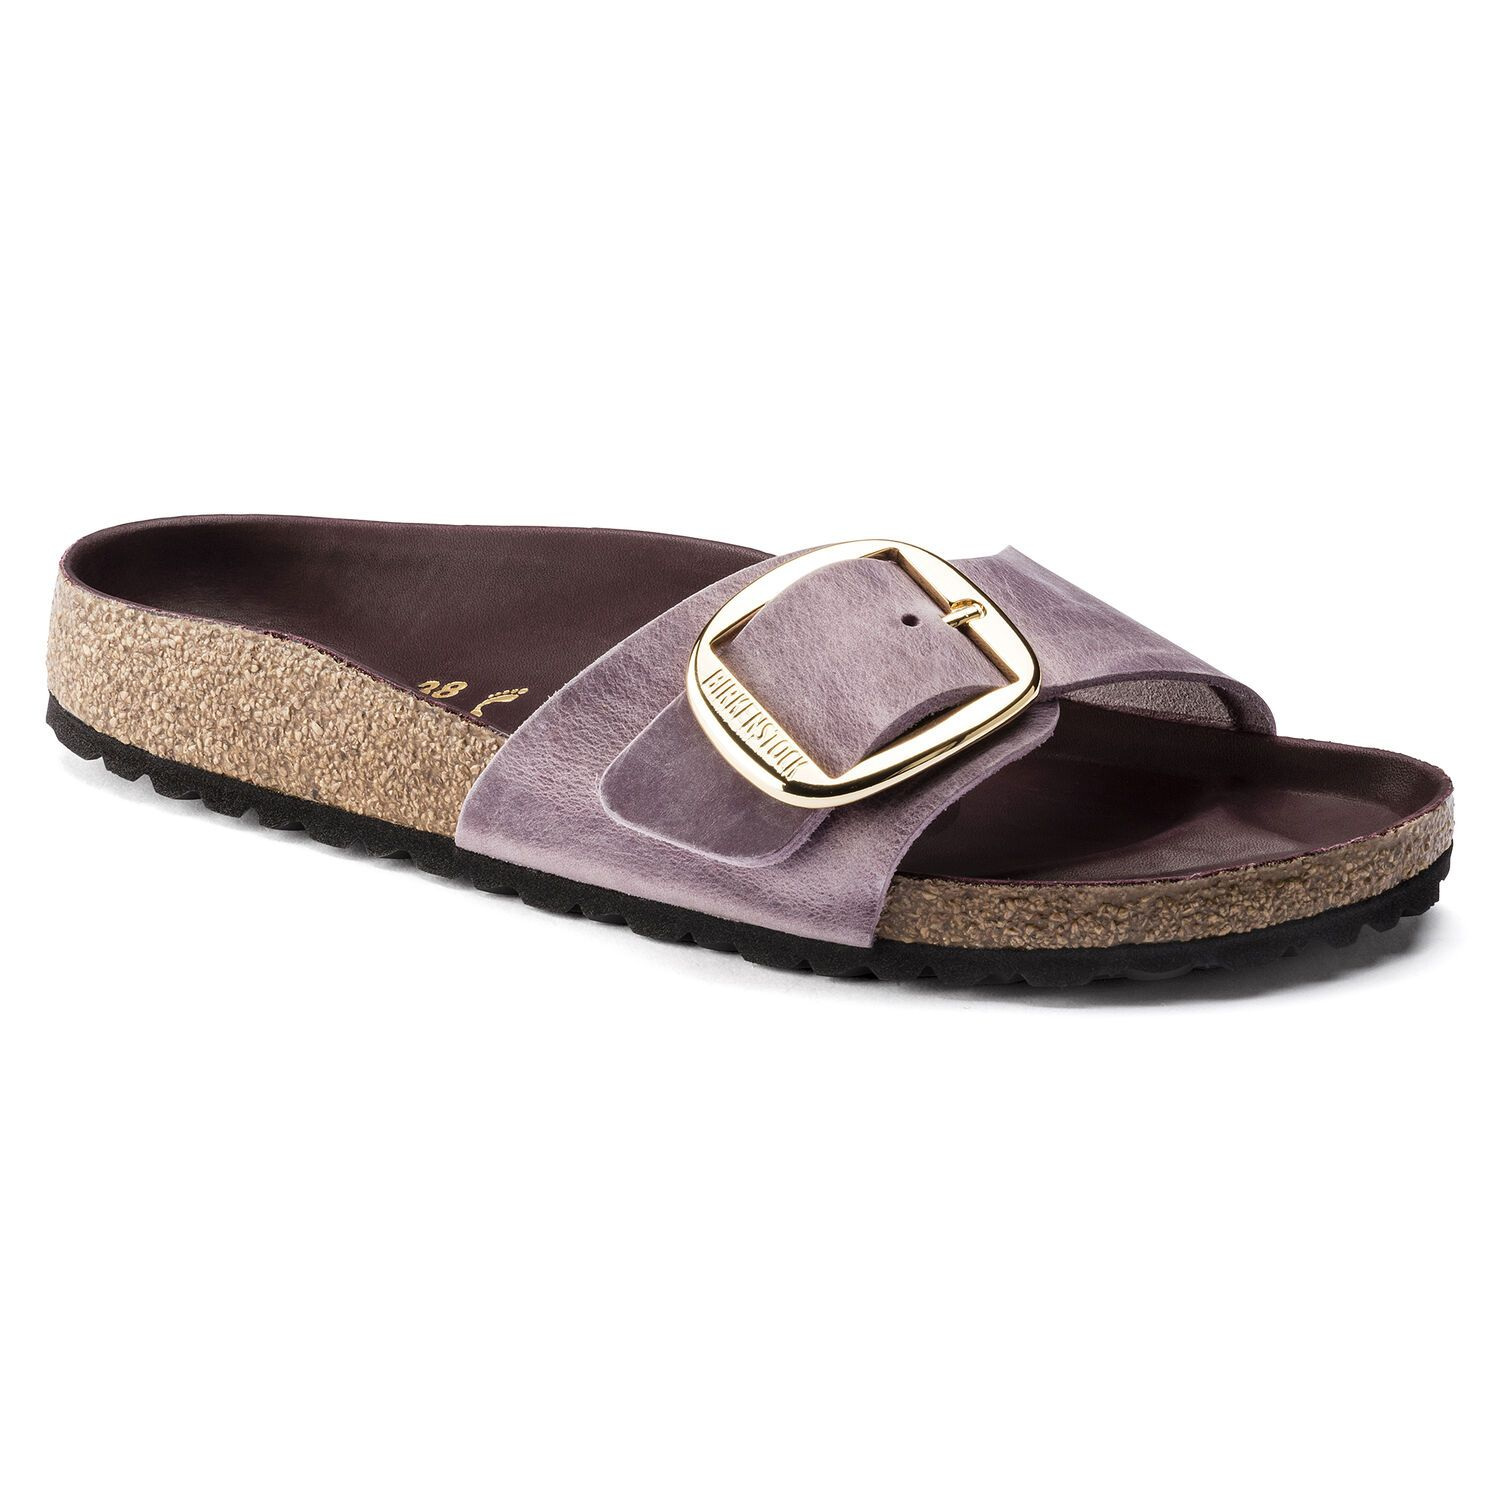 Madrid Big Buckle Oiled Leather (Regular width) Lavender Blush Sandals Birkenstock